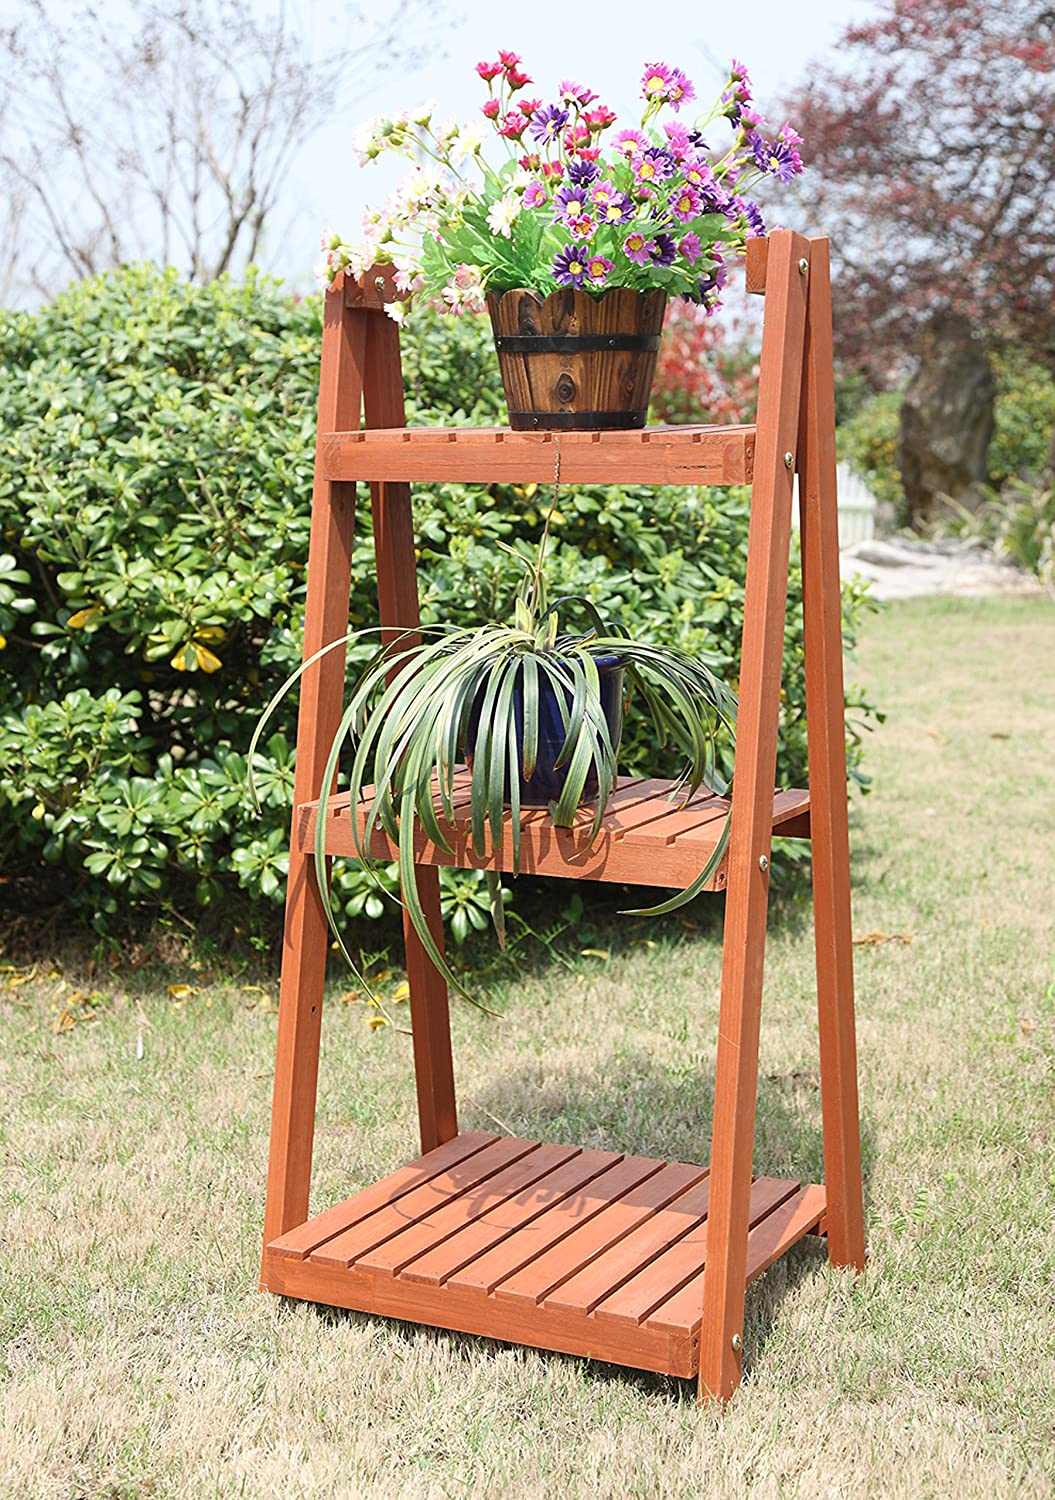 The Seasoning Products Sale 3 Tier Plant Stand Decorating